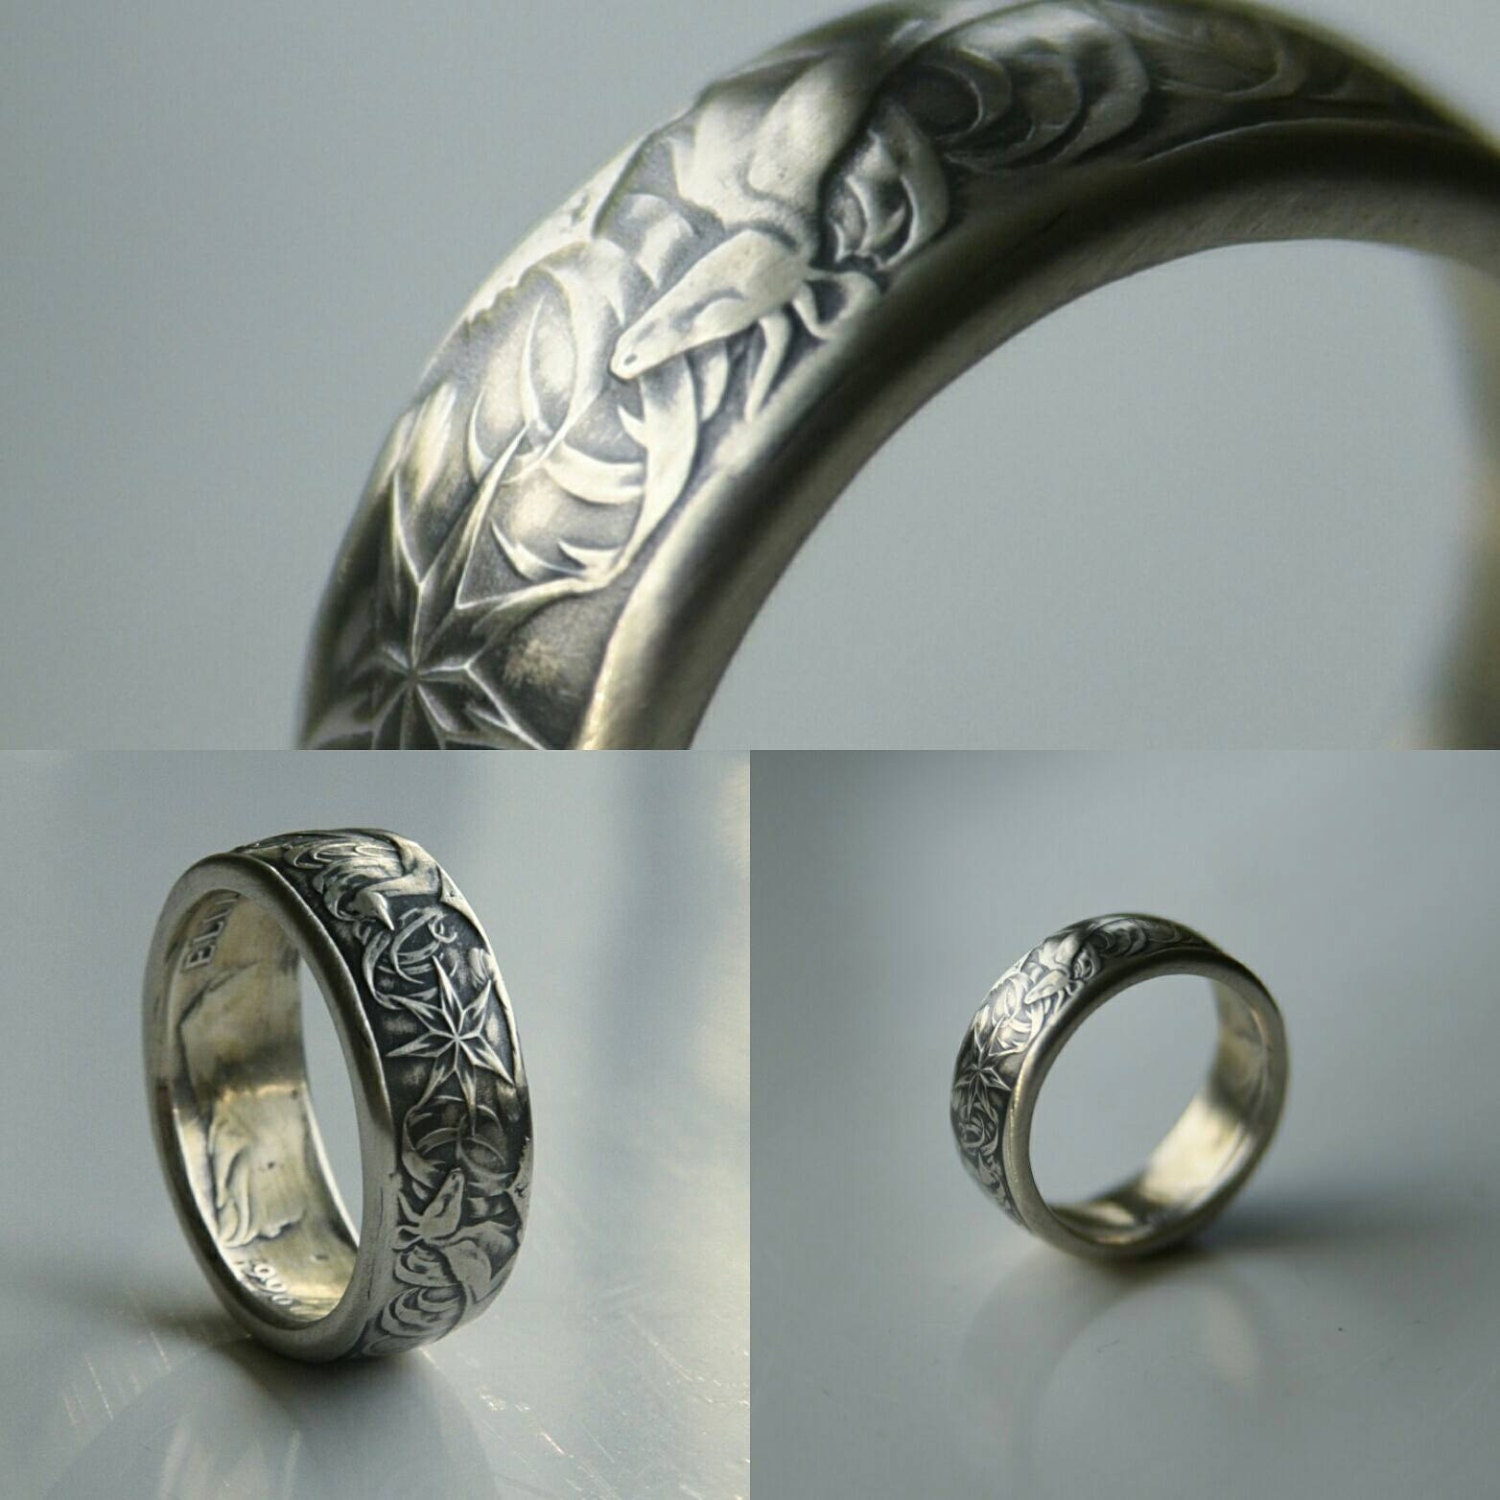 australia 50 cents silver coin ring